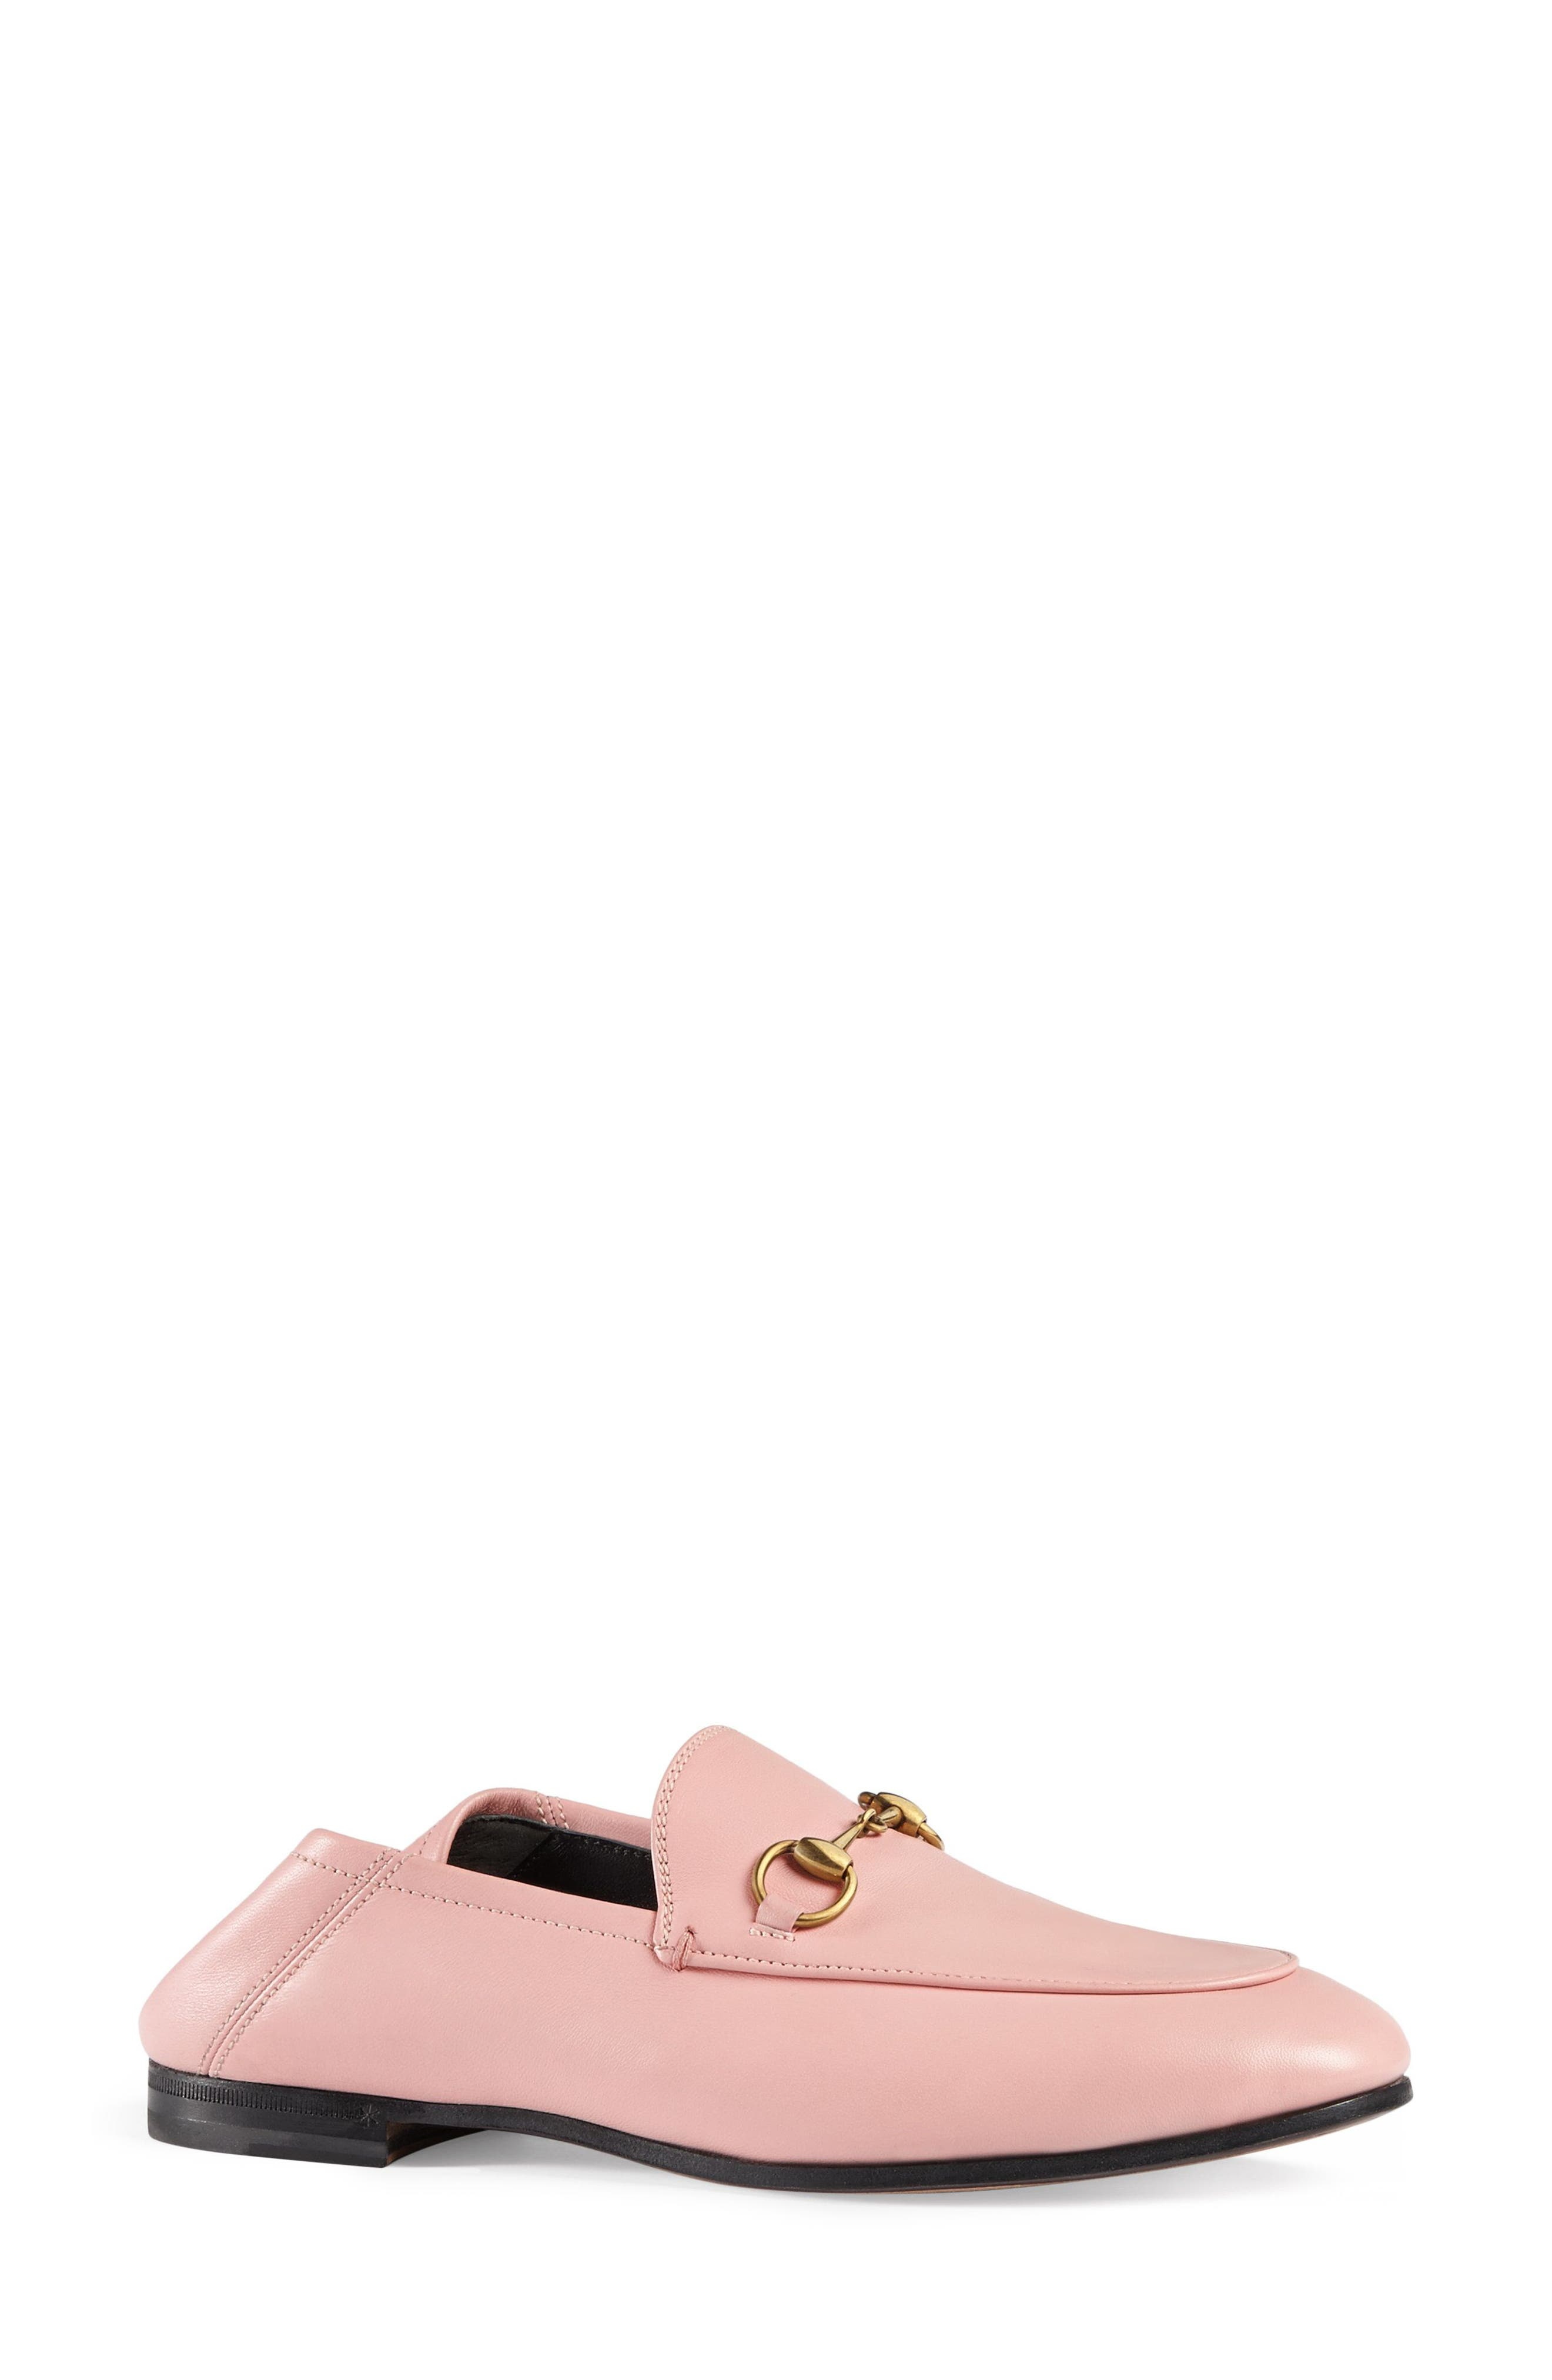 Brixton Convertible Loafer,                             Main thumbnail 1, color,                             Light Pink Leather